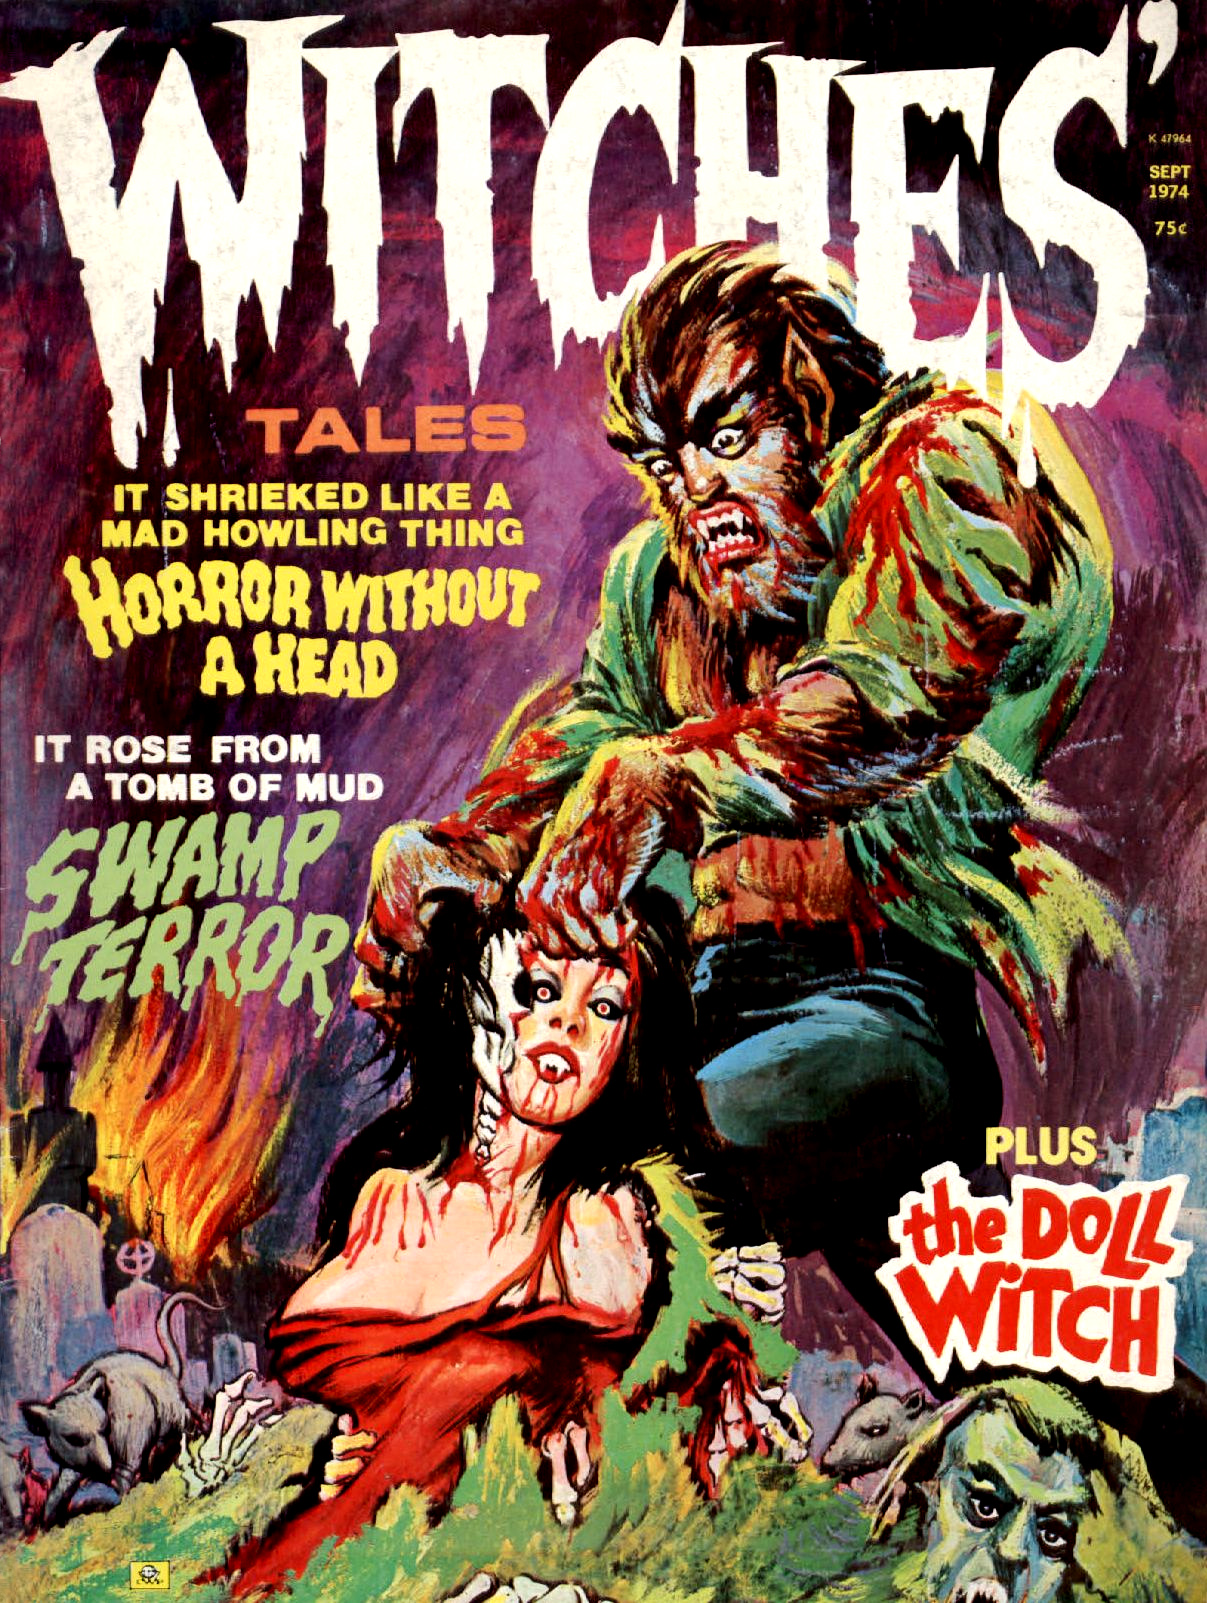 Witches' Tales Vol. 6 #5 (Eerie Publications 1974)